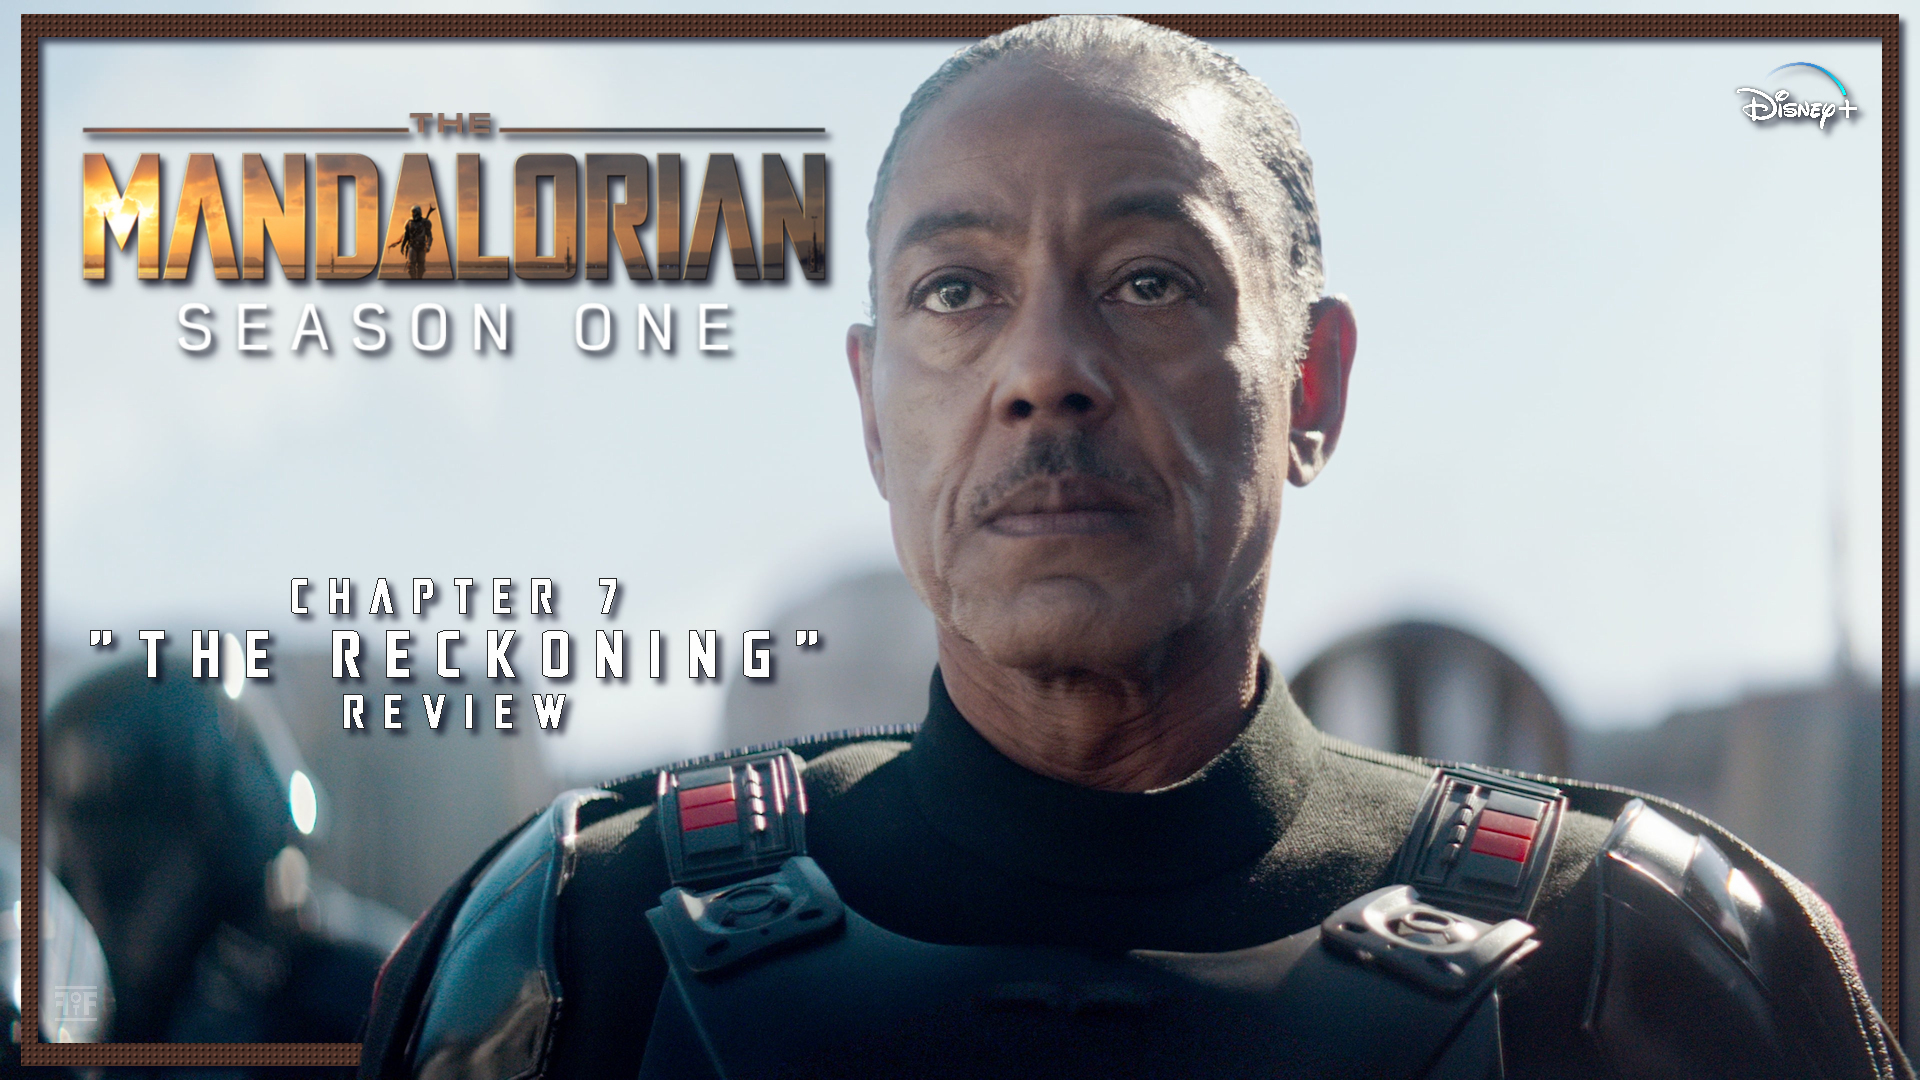 The Mandalorian Chapter 7 The Reckoning Review